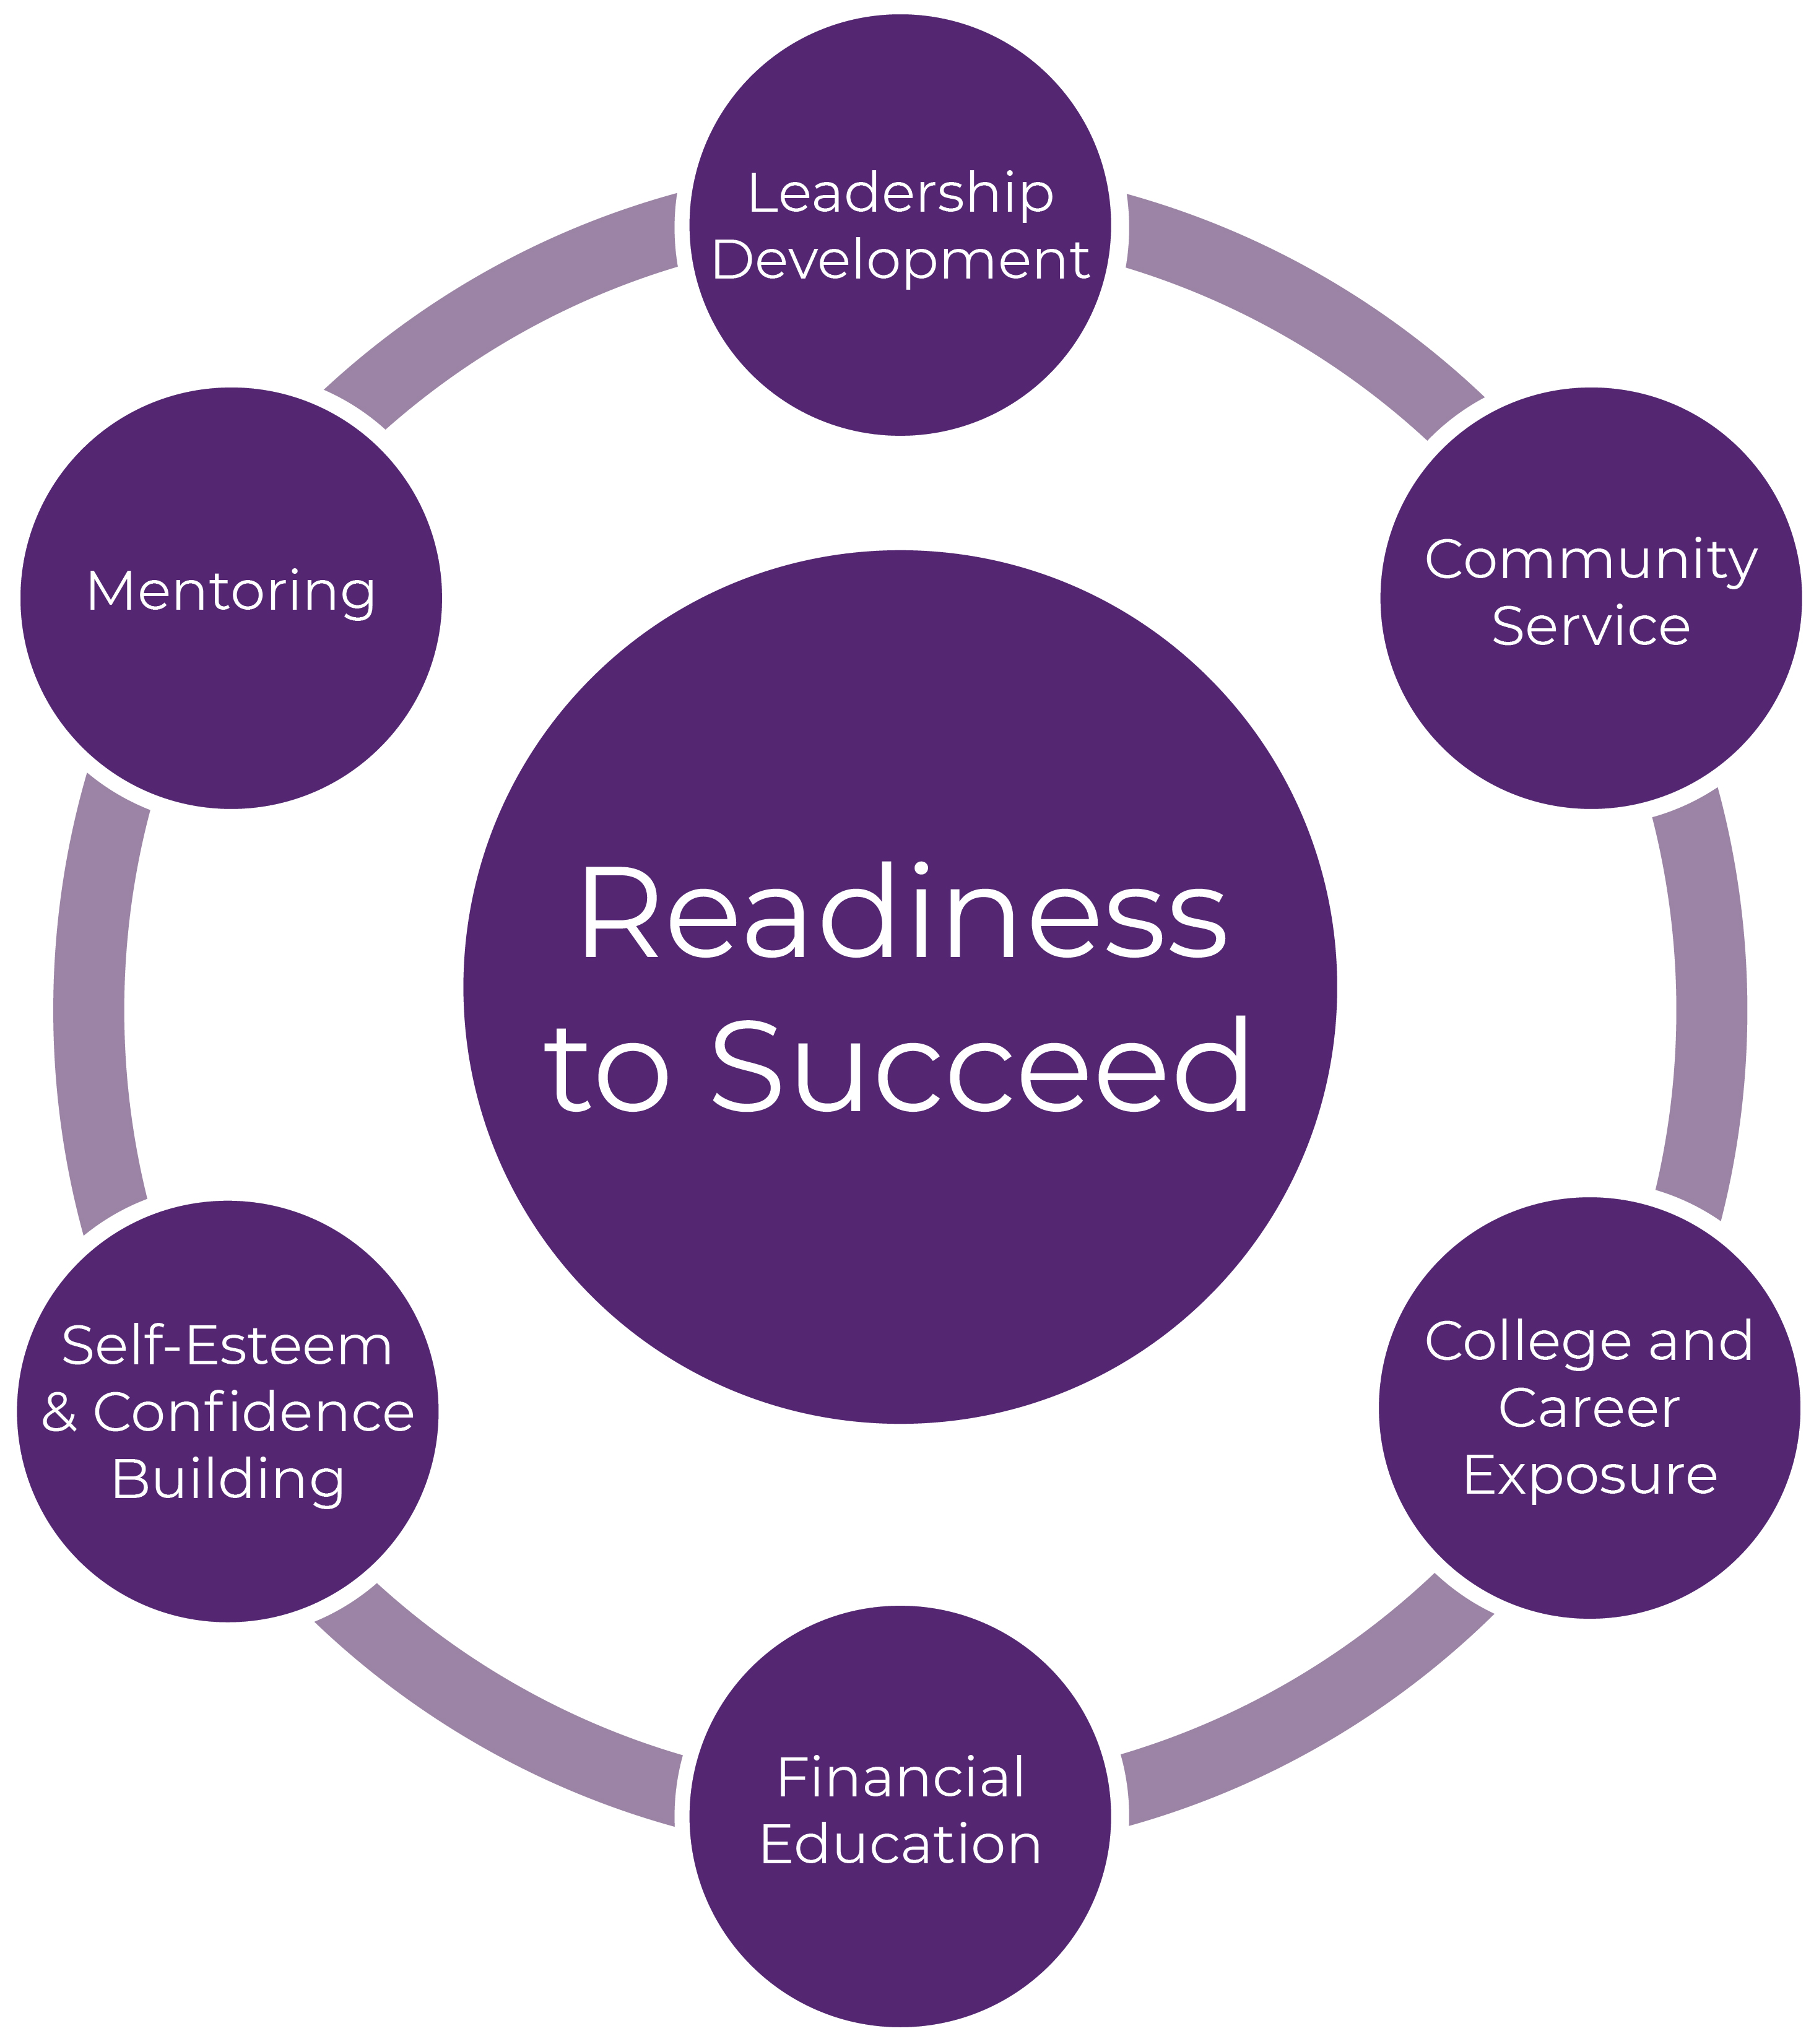 Readiness to Succeed